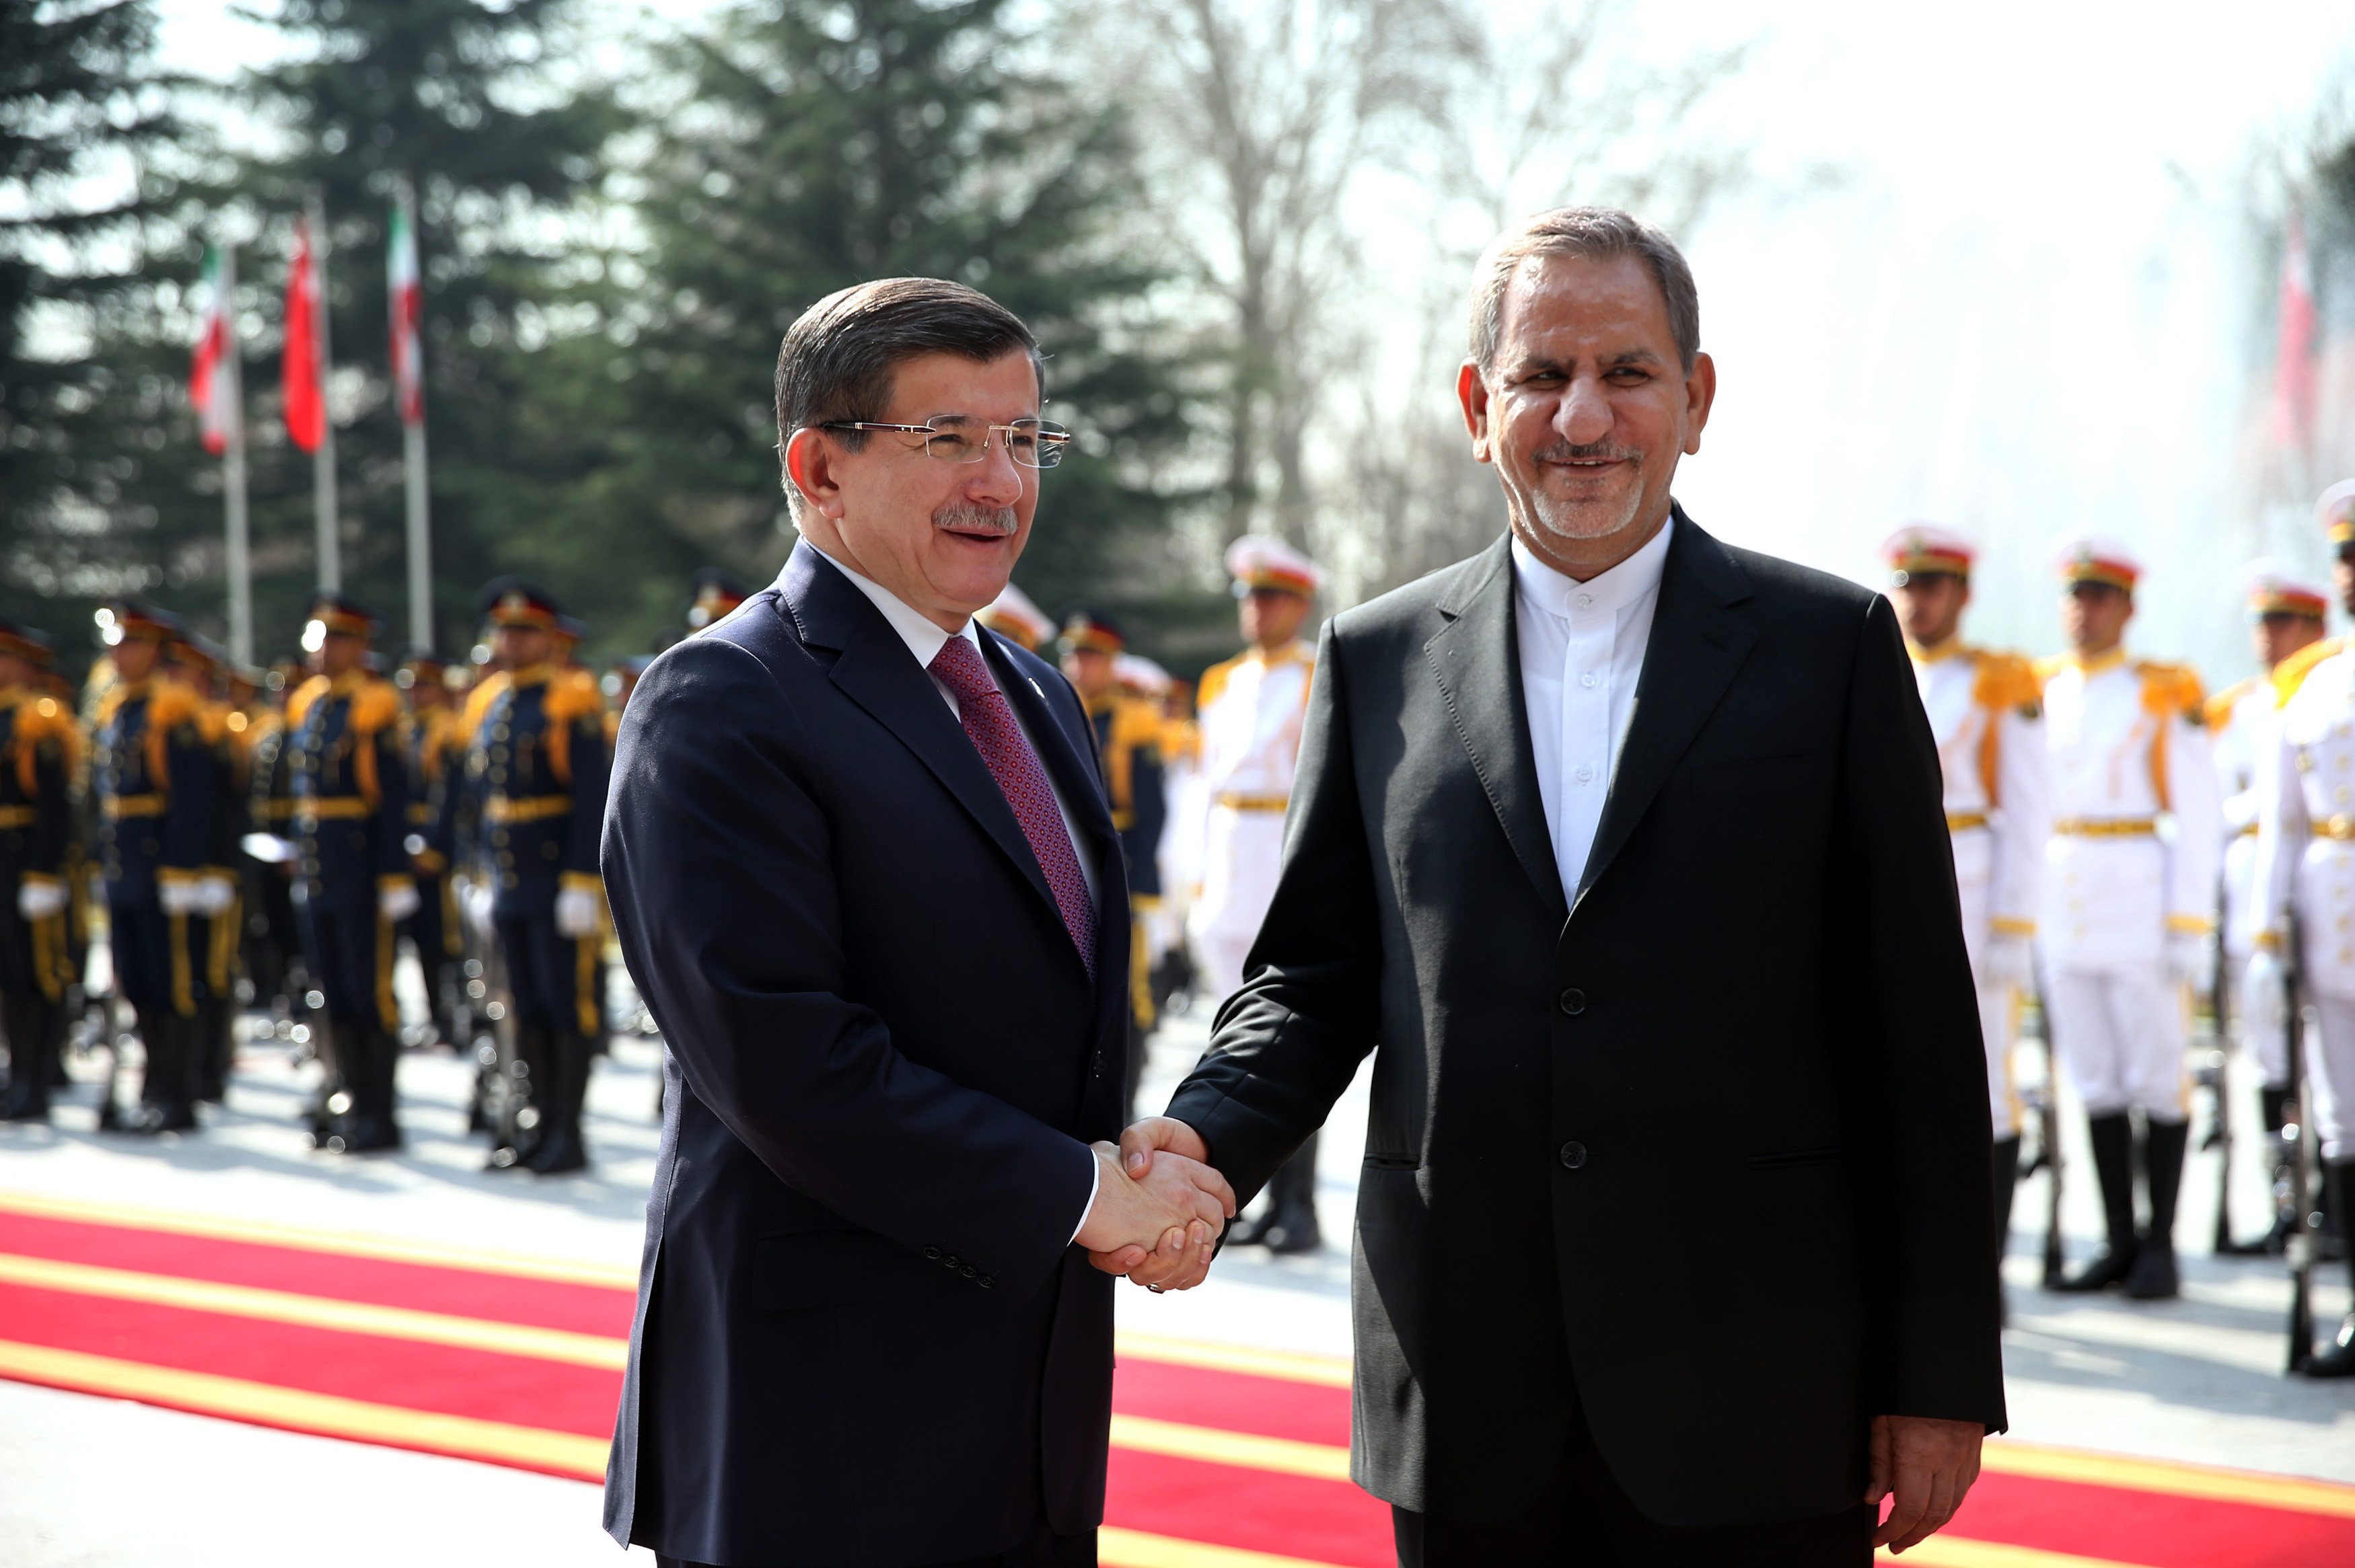 Turkish Prime Minister Ahmet Davutoglu, left, shakes hands with Iranian Vice-President Eshagh Jahangiri during his official welcoming ceremony at the Saadabad Palace in Tehran, Iran, Saturday, March 5, 2016